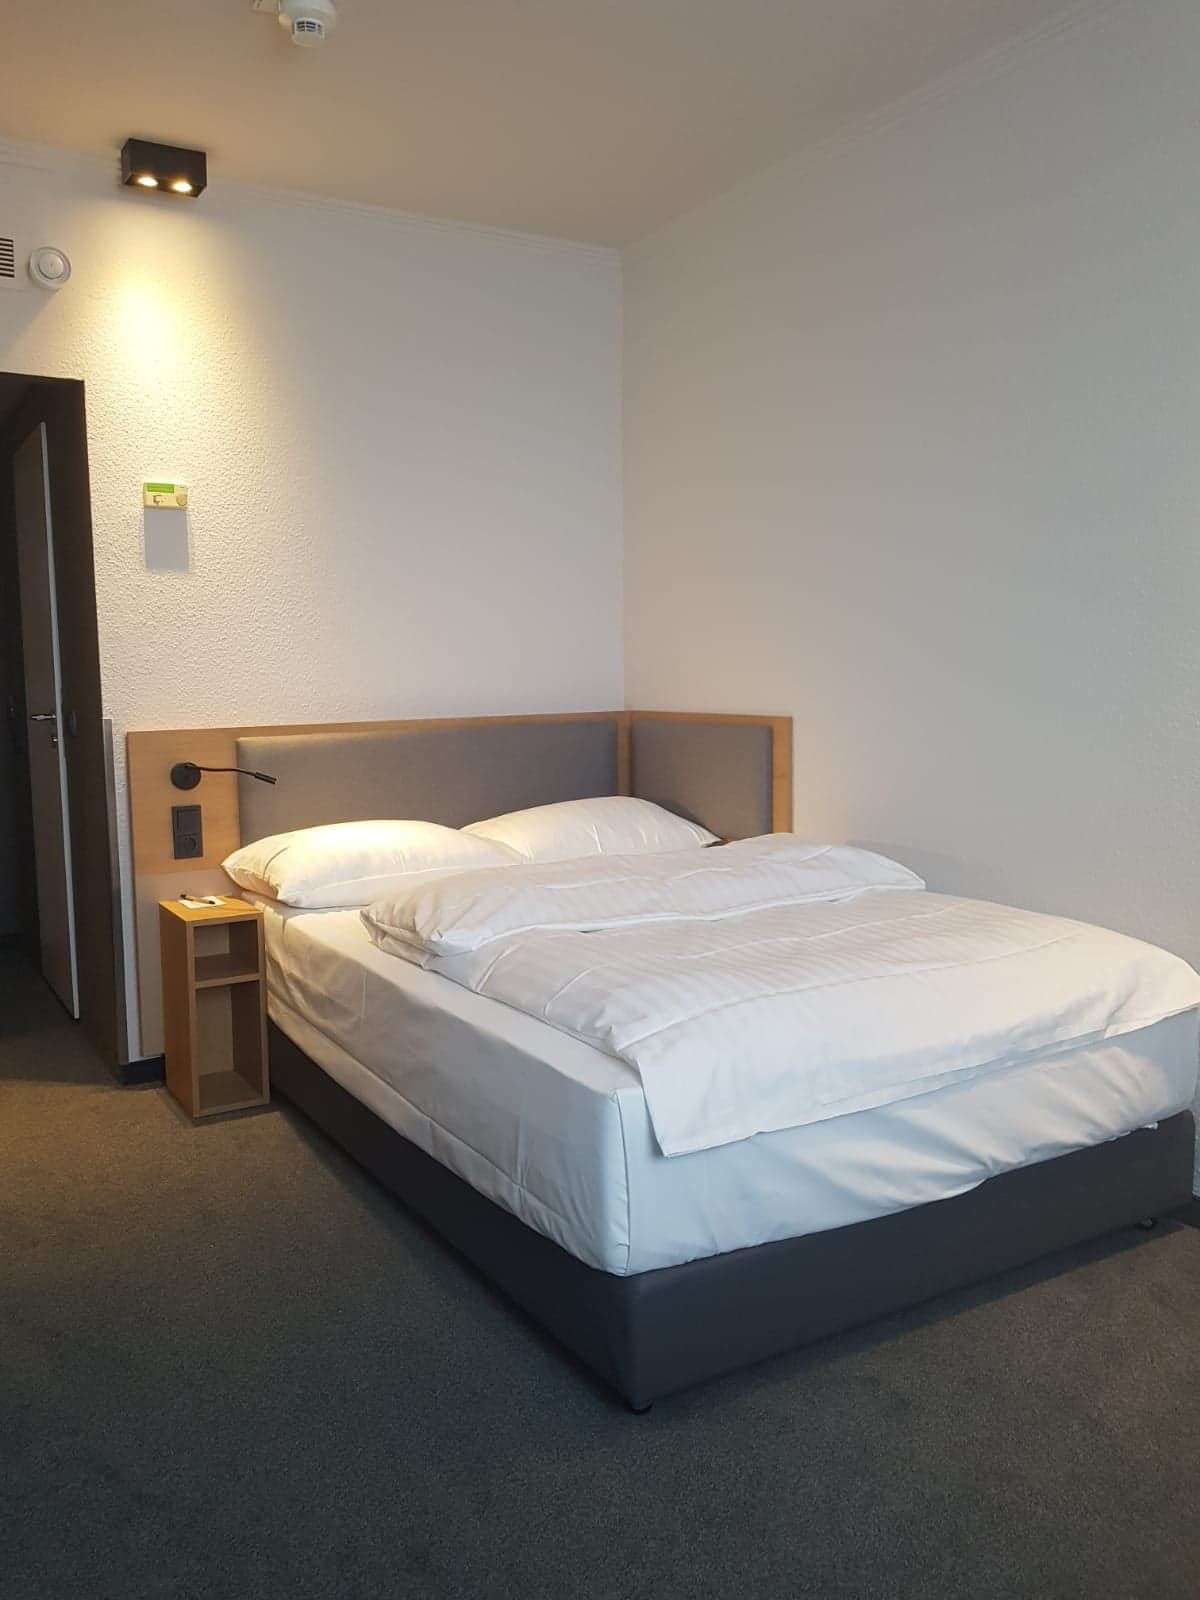 Intercity hotel wuppertal producent mebli i for Hotel wuppertal